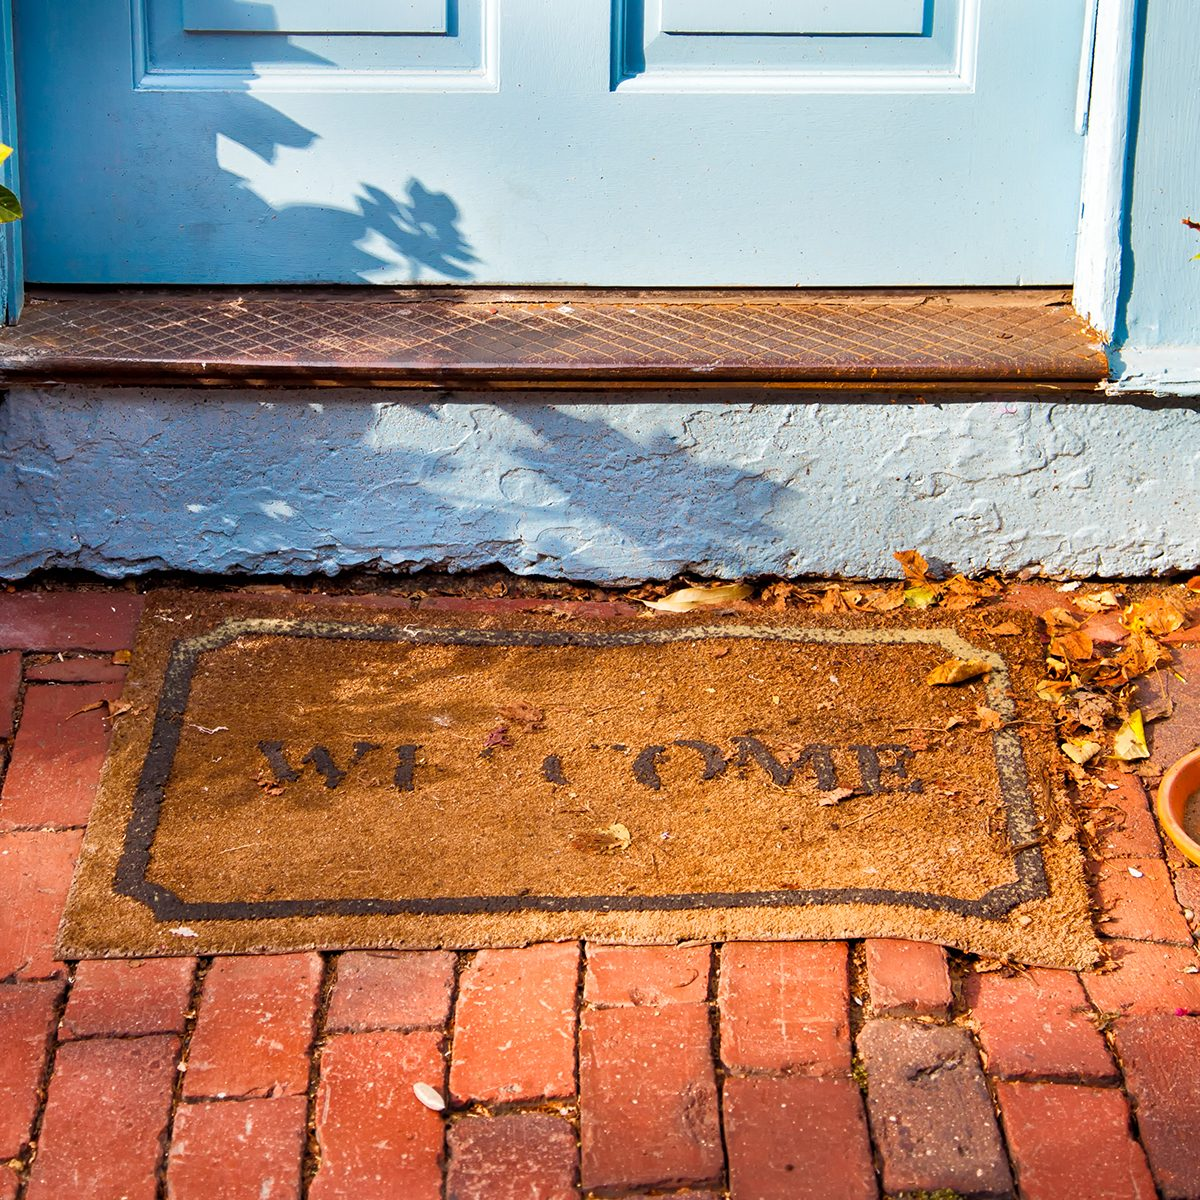 Welcome mat outside a cottage front door. ; Shutterstock ID 192399047; Job (TFH, TOH, RD, BNB, CWM, CM): TOH